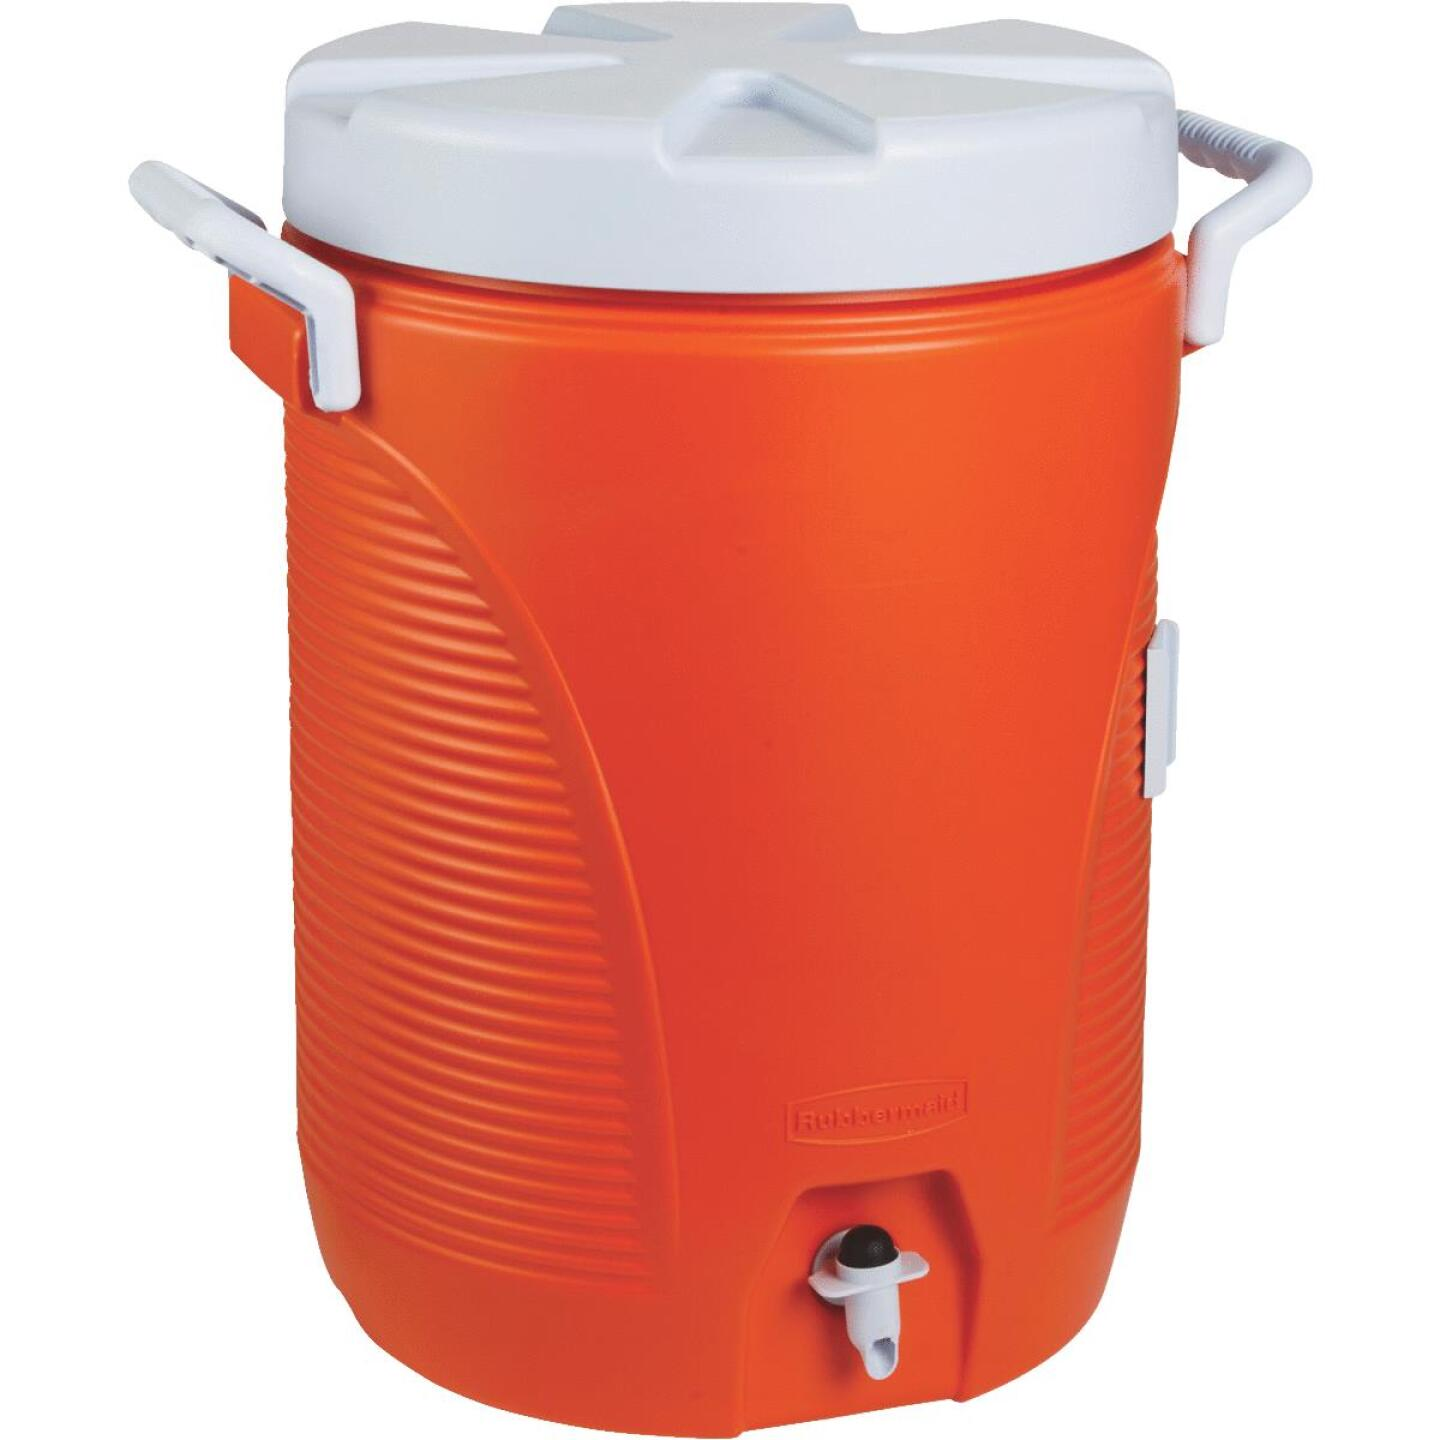 Rubbermaid 5 Gal. Orange Water Jug with Carry Handle Image 1